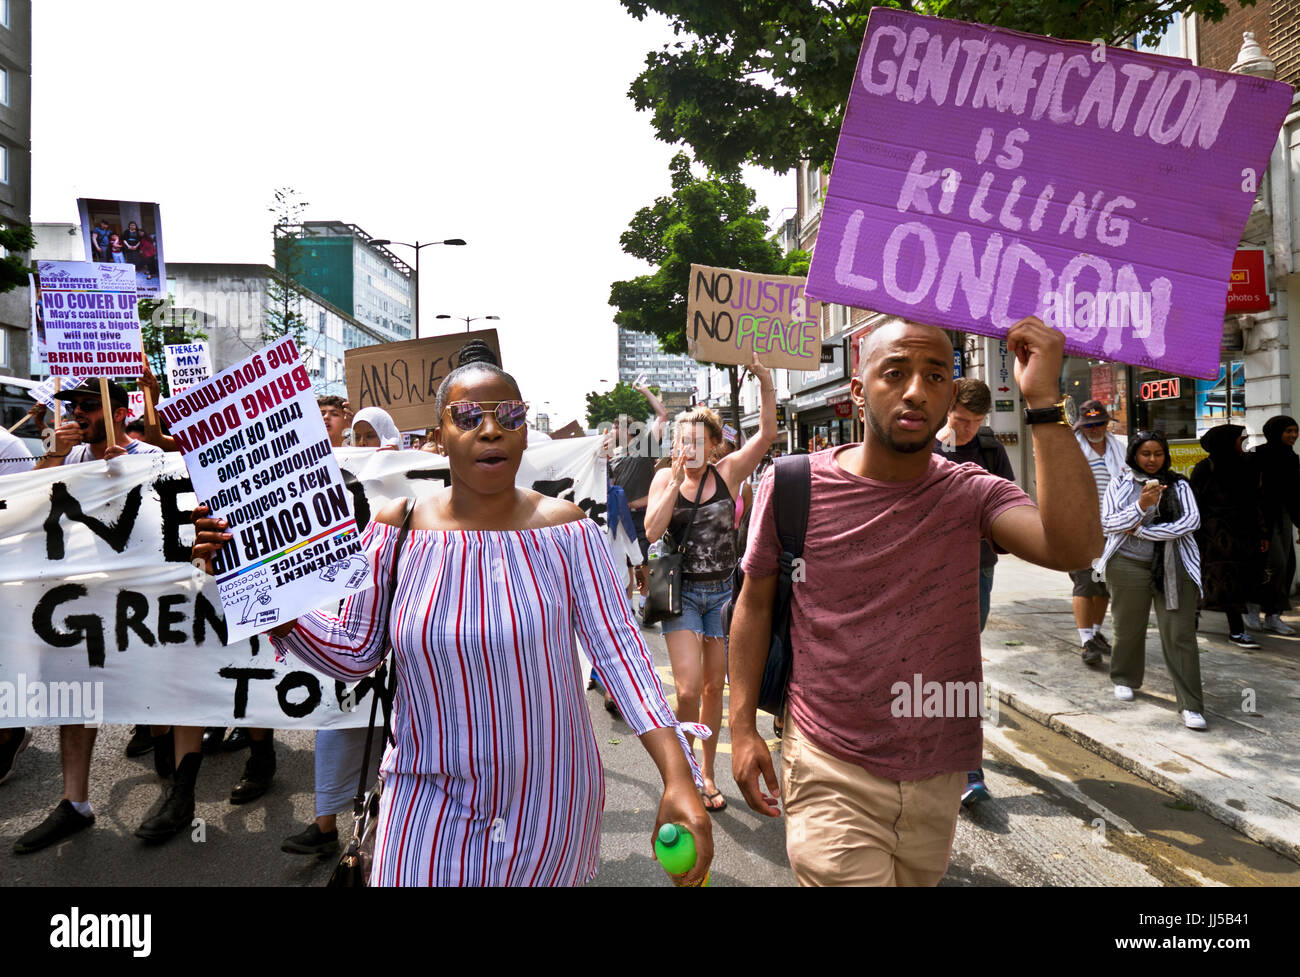 Following the fire at Grenfell Tower, friends and members of the community marched  from Shephards Bush to Westminster - Stock Image